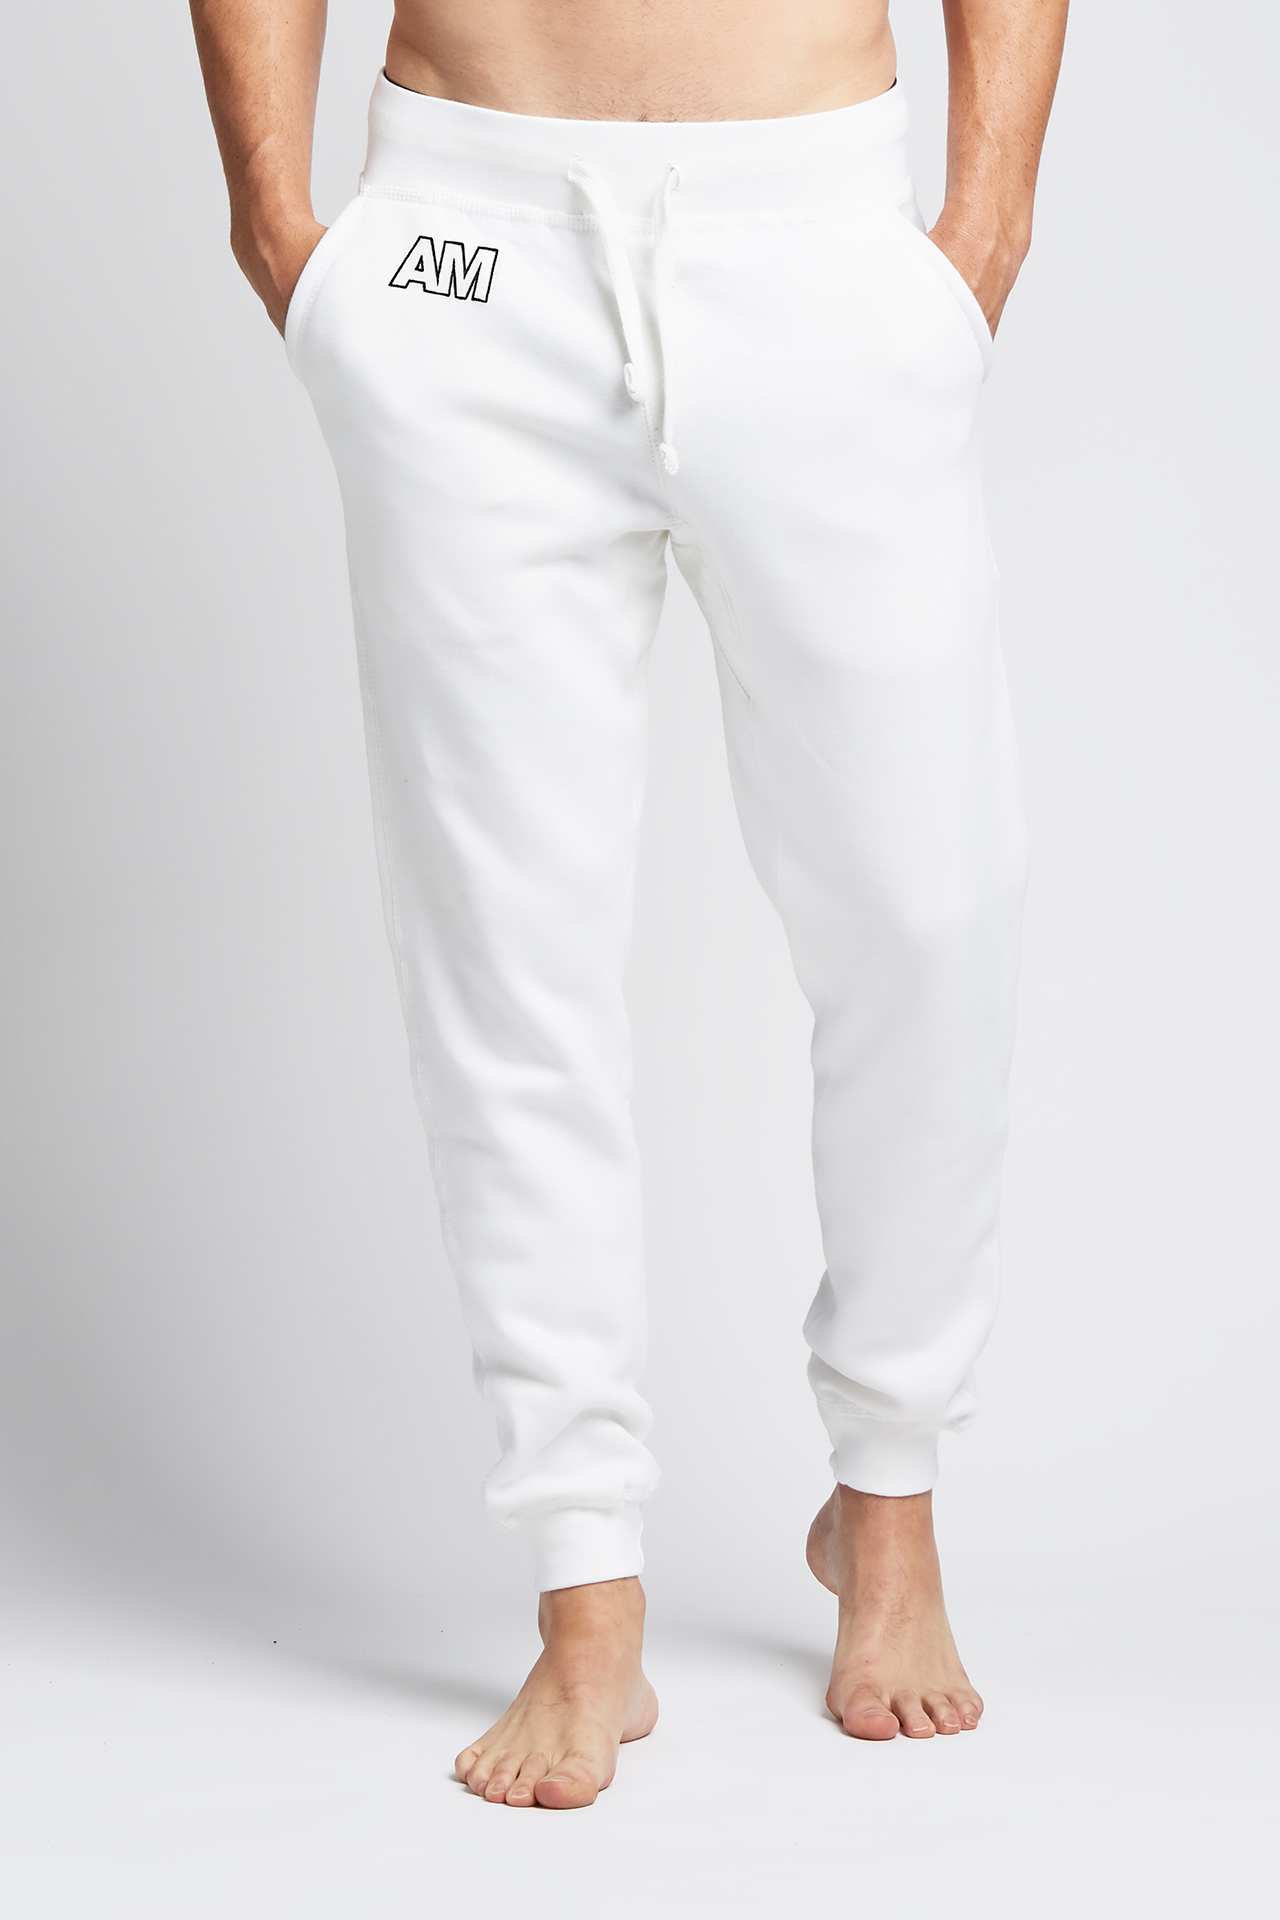 AM Jogger Sweatpants in White